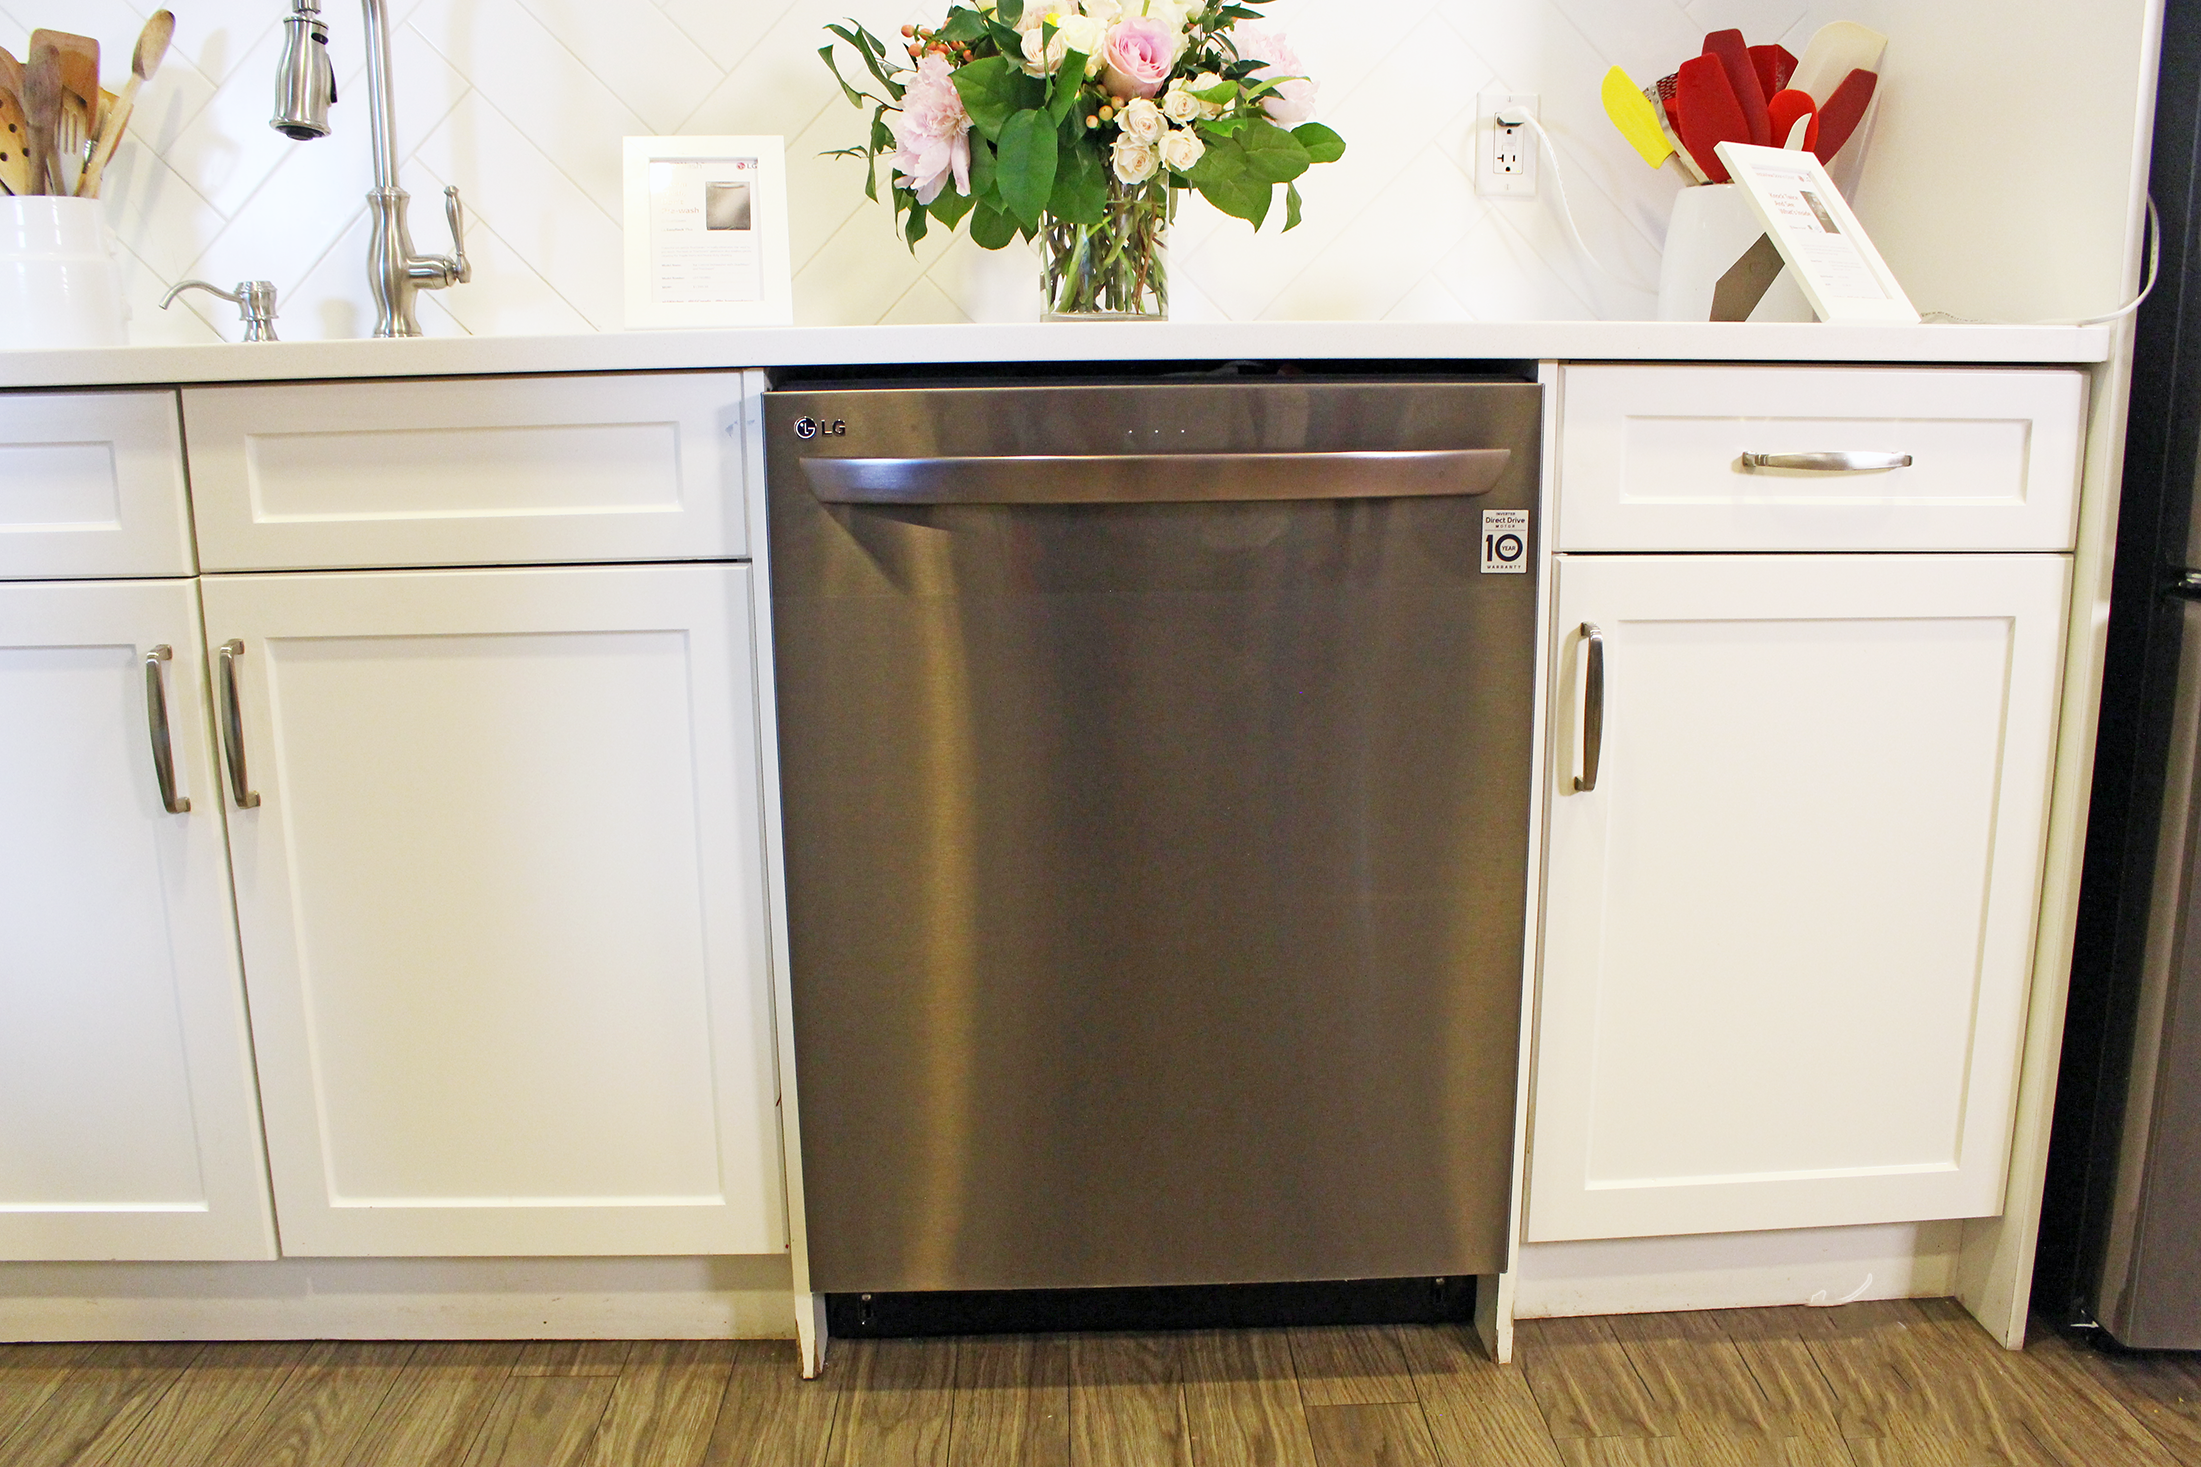 The Kitchen is The Heart of the Home: Add the LG QuadWash and LG InstaView to Yours!